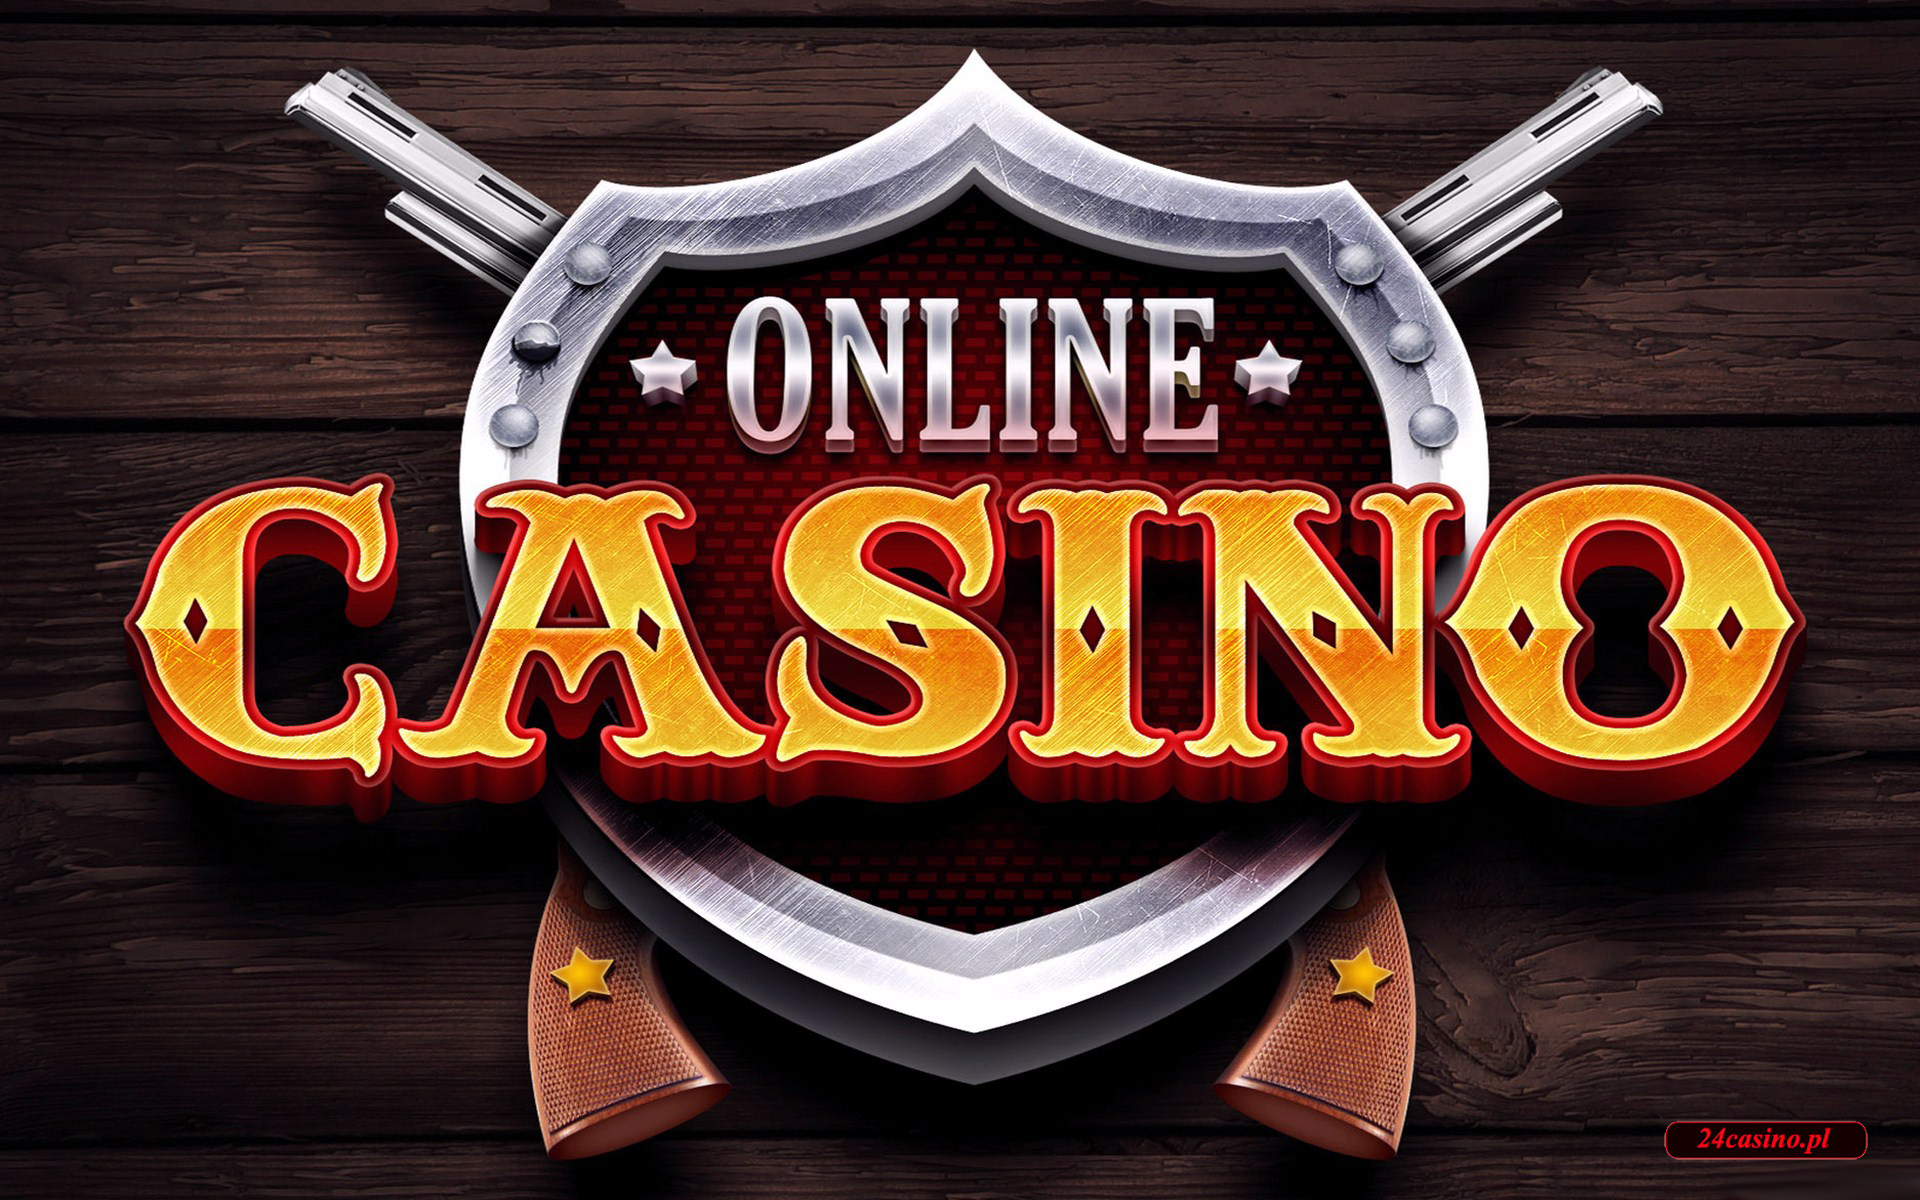 watch casino online oneline casino